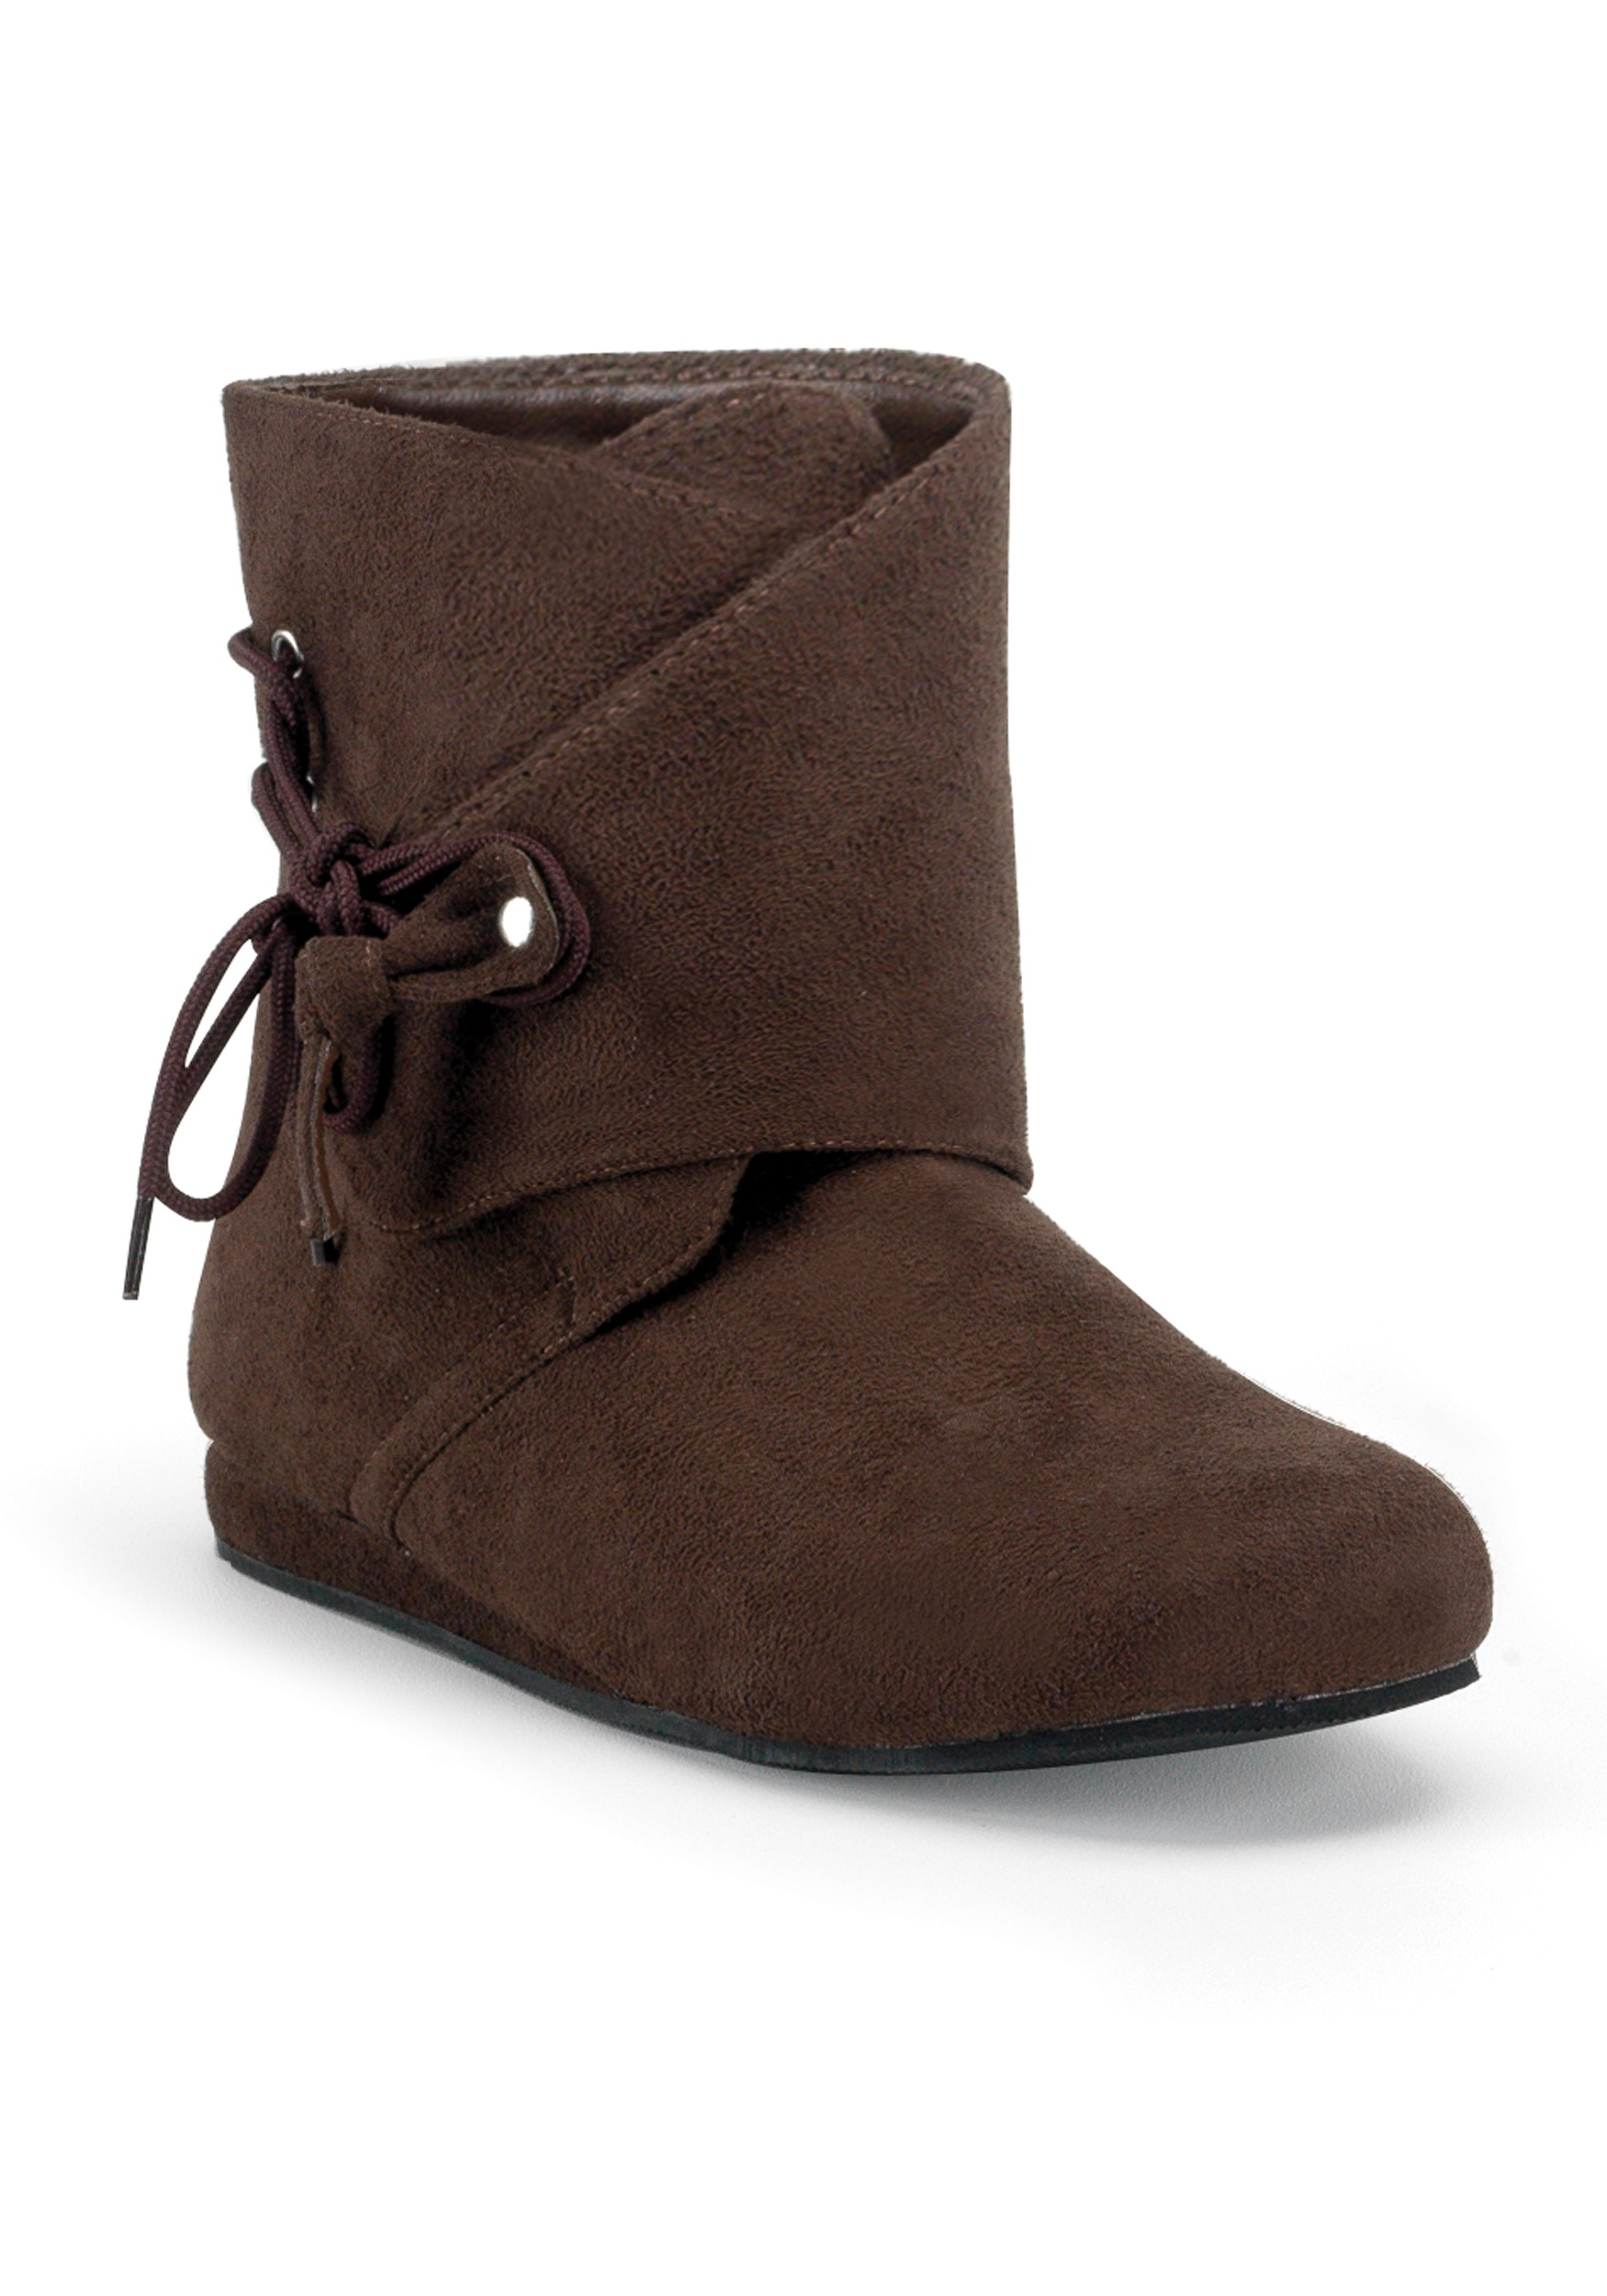 brown suede moccasin boots mens costume shoes